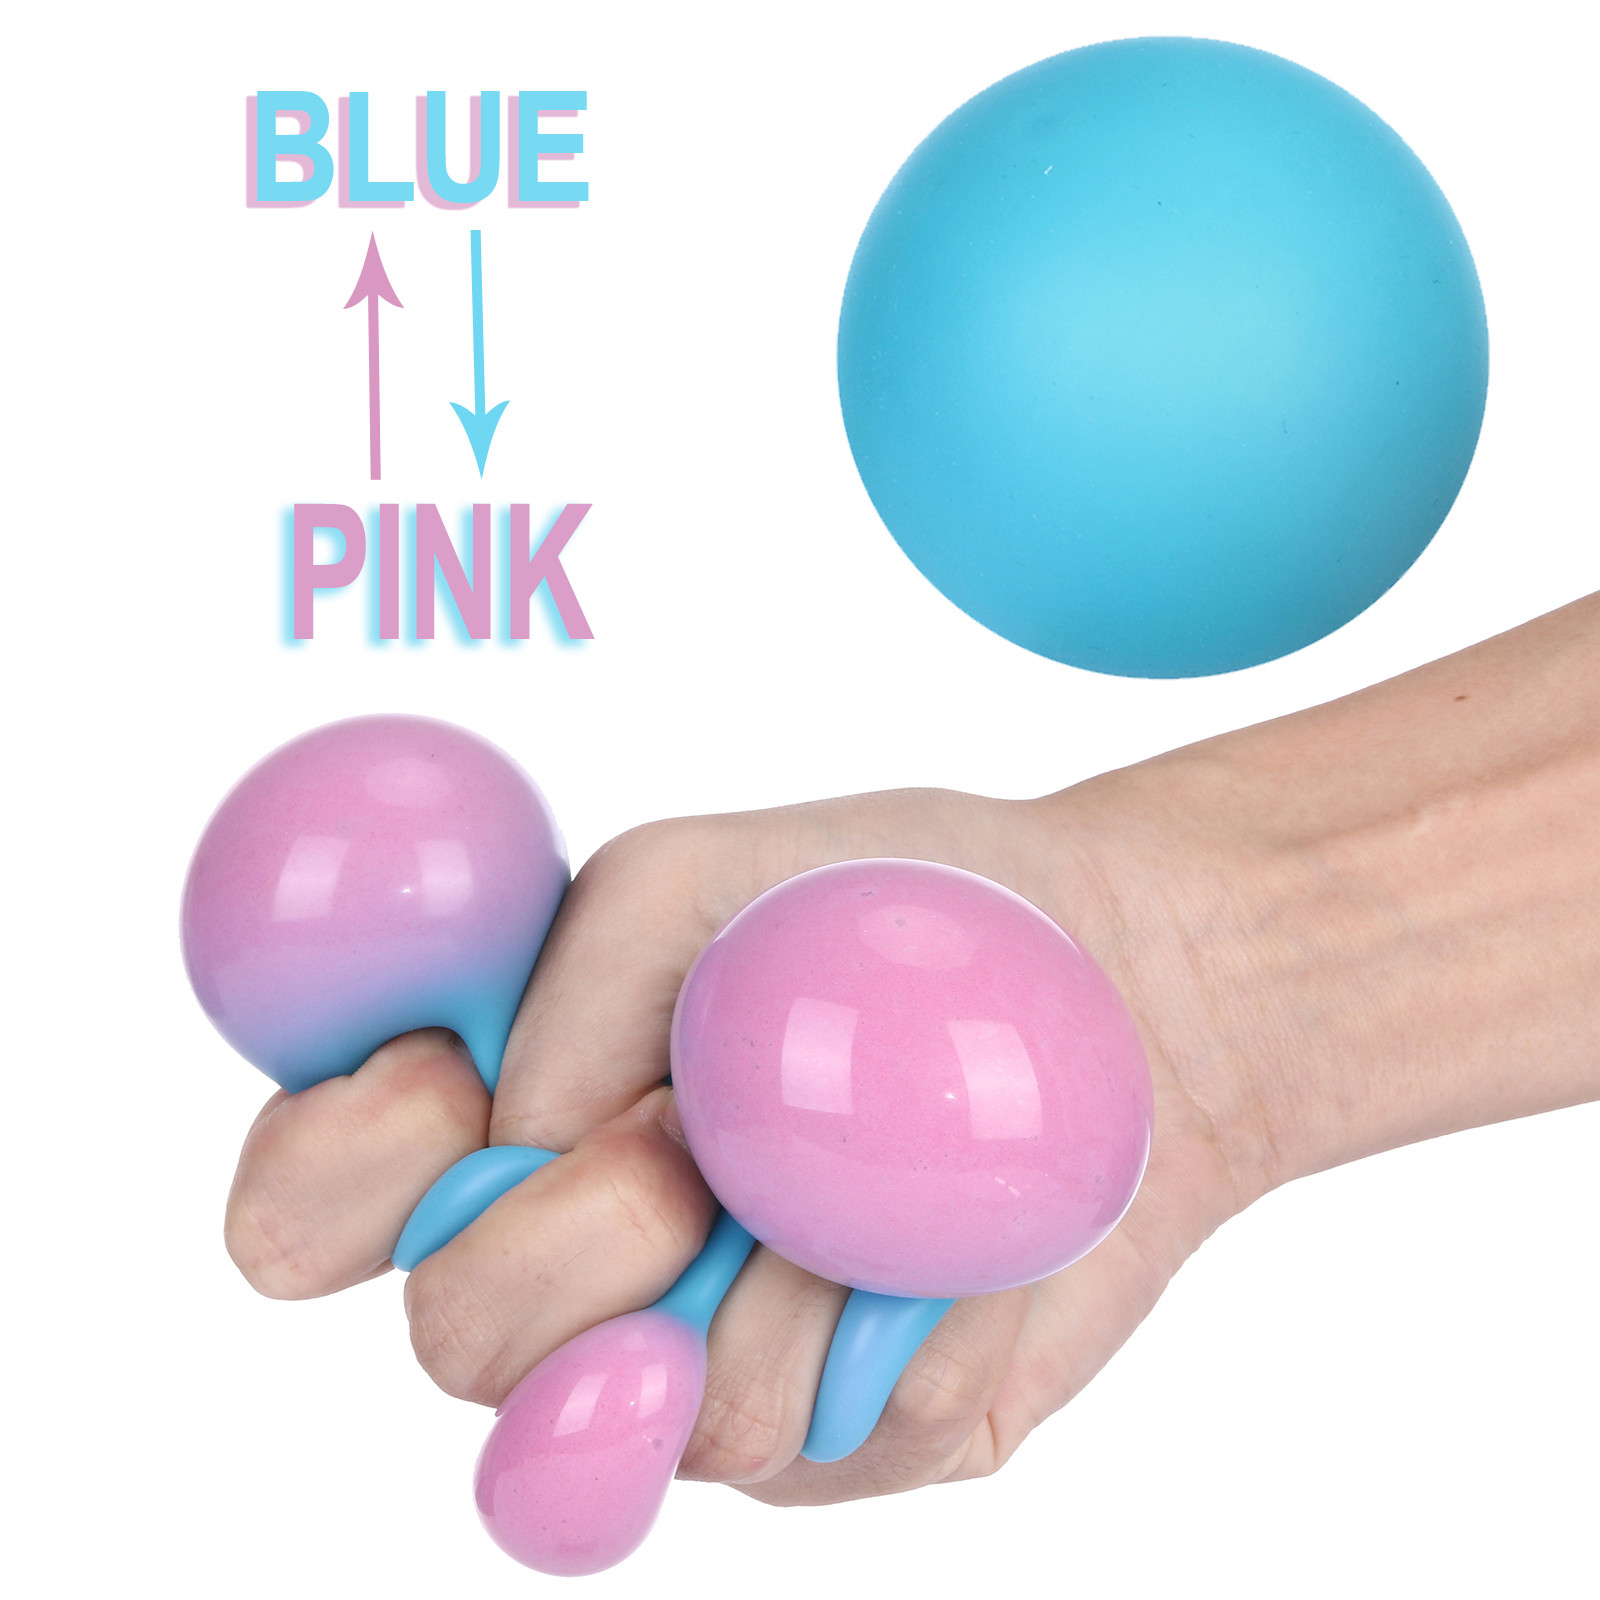 Clear Stress Balls Colorful Ball Autism Mood Squeeze Relief Healthy Toy Funny Gadget Vent Toy Children Christmas Gift 2021 img5